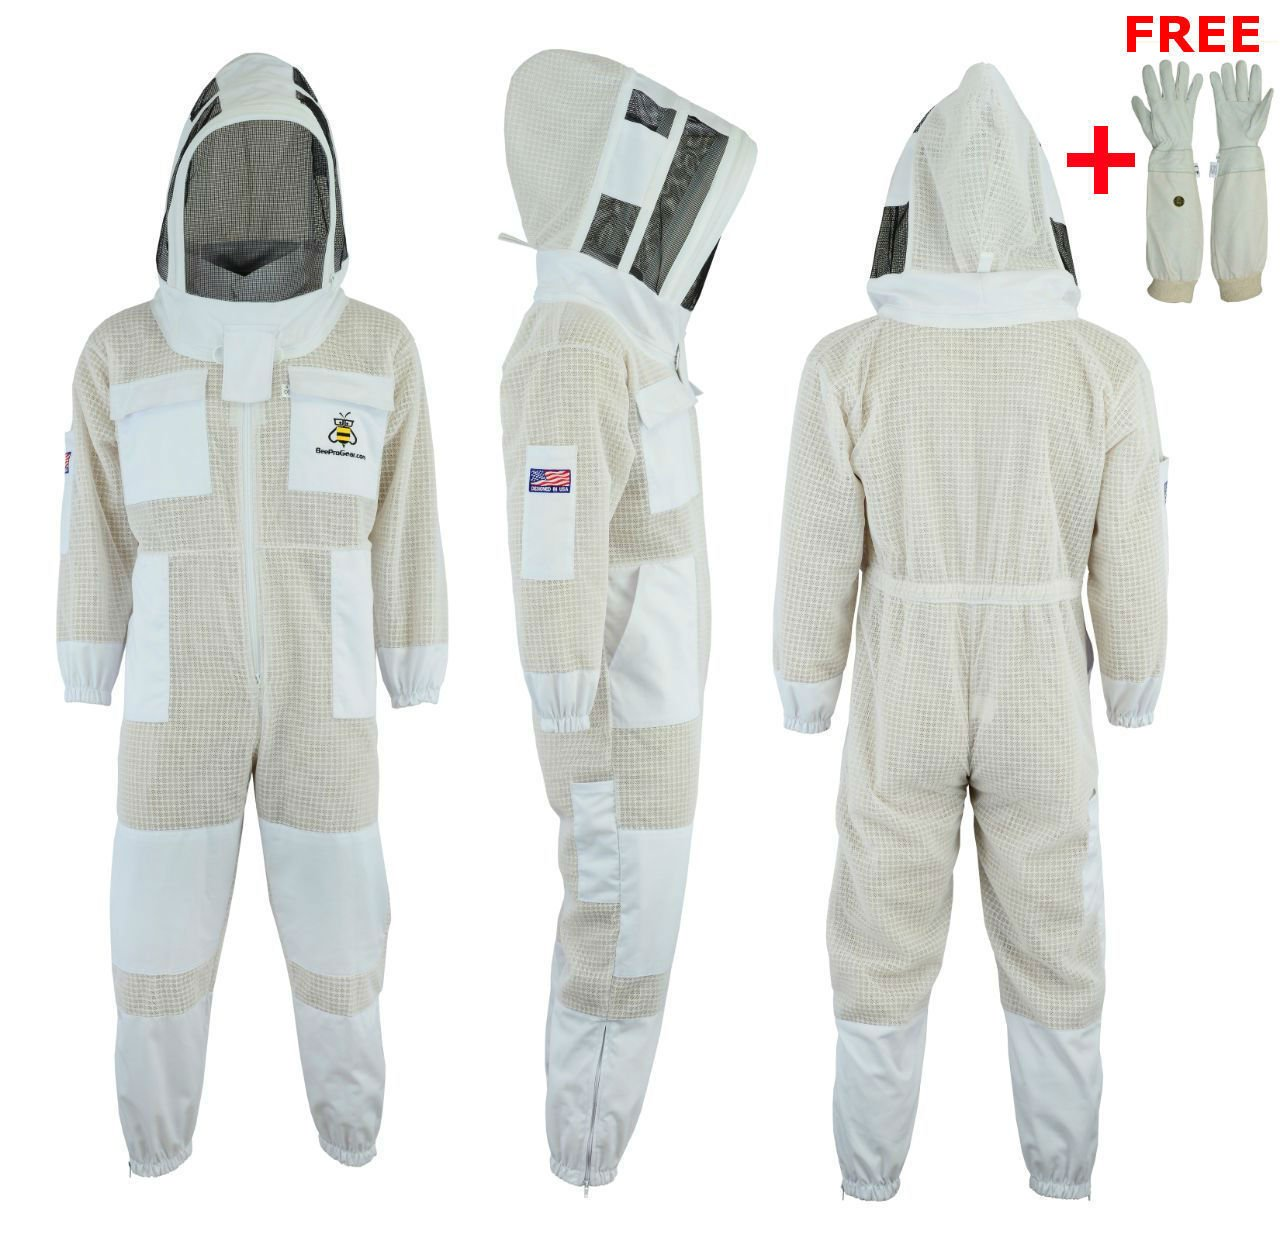 Bee Suit 3 Layer Ultra Ventilated Safety Protective Unisex White Fabric Mesh Beekeeping Jacket Beekeeper Outfit Fency Veil-XL by Bee Suit (Image #1)